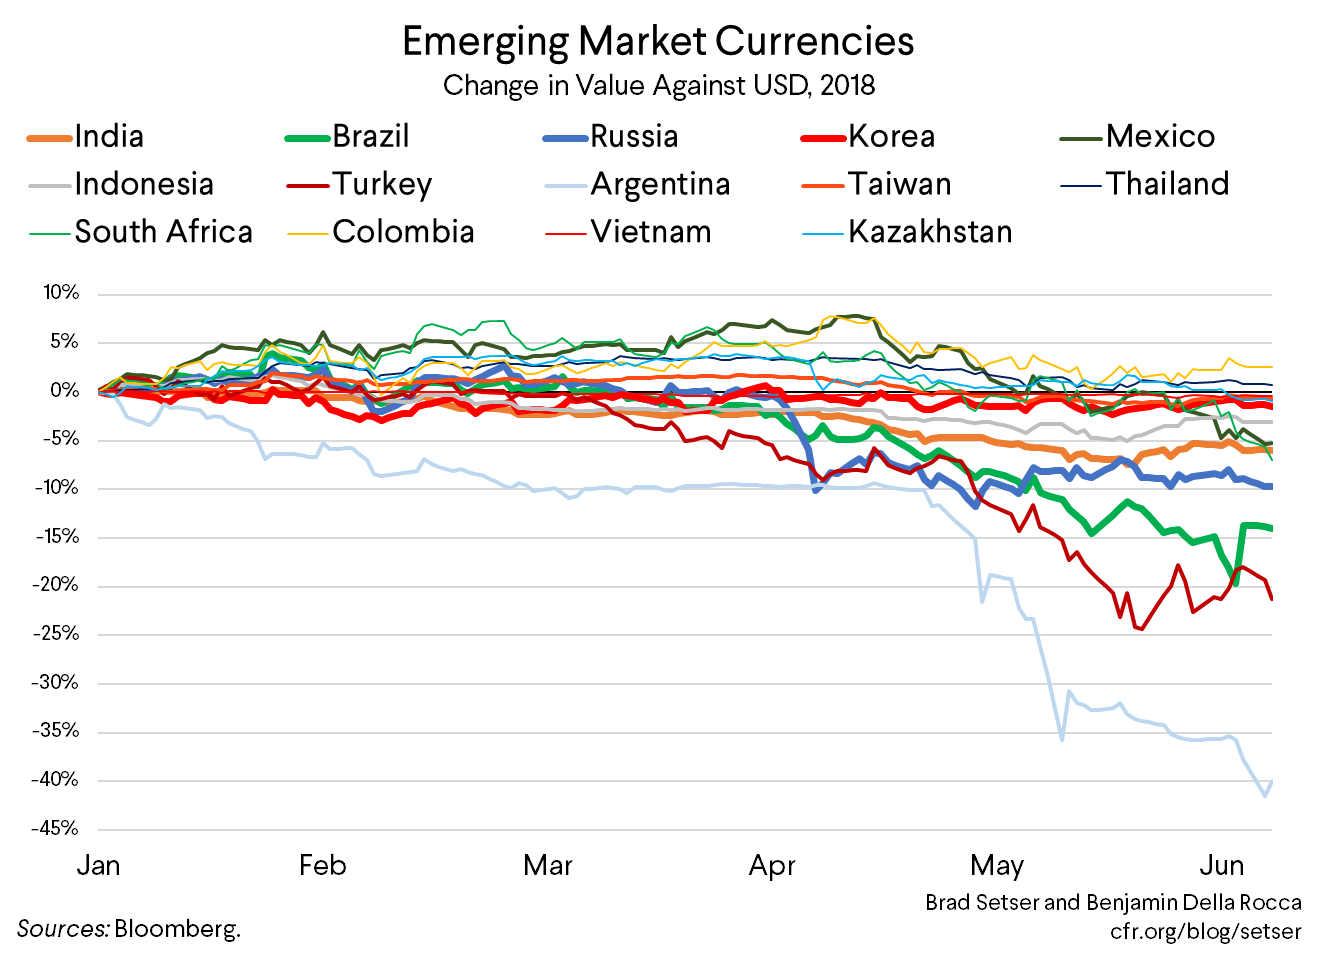 Emerging Markets Under Pressure